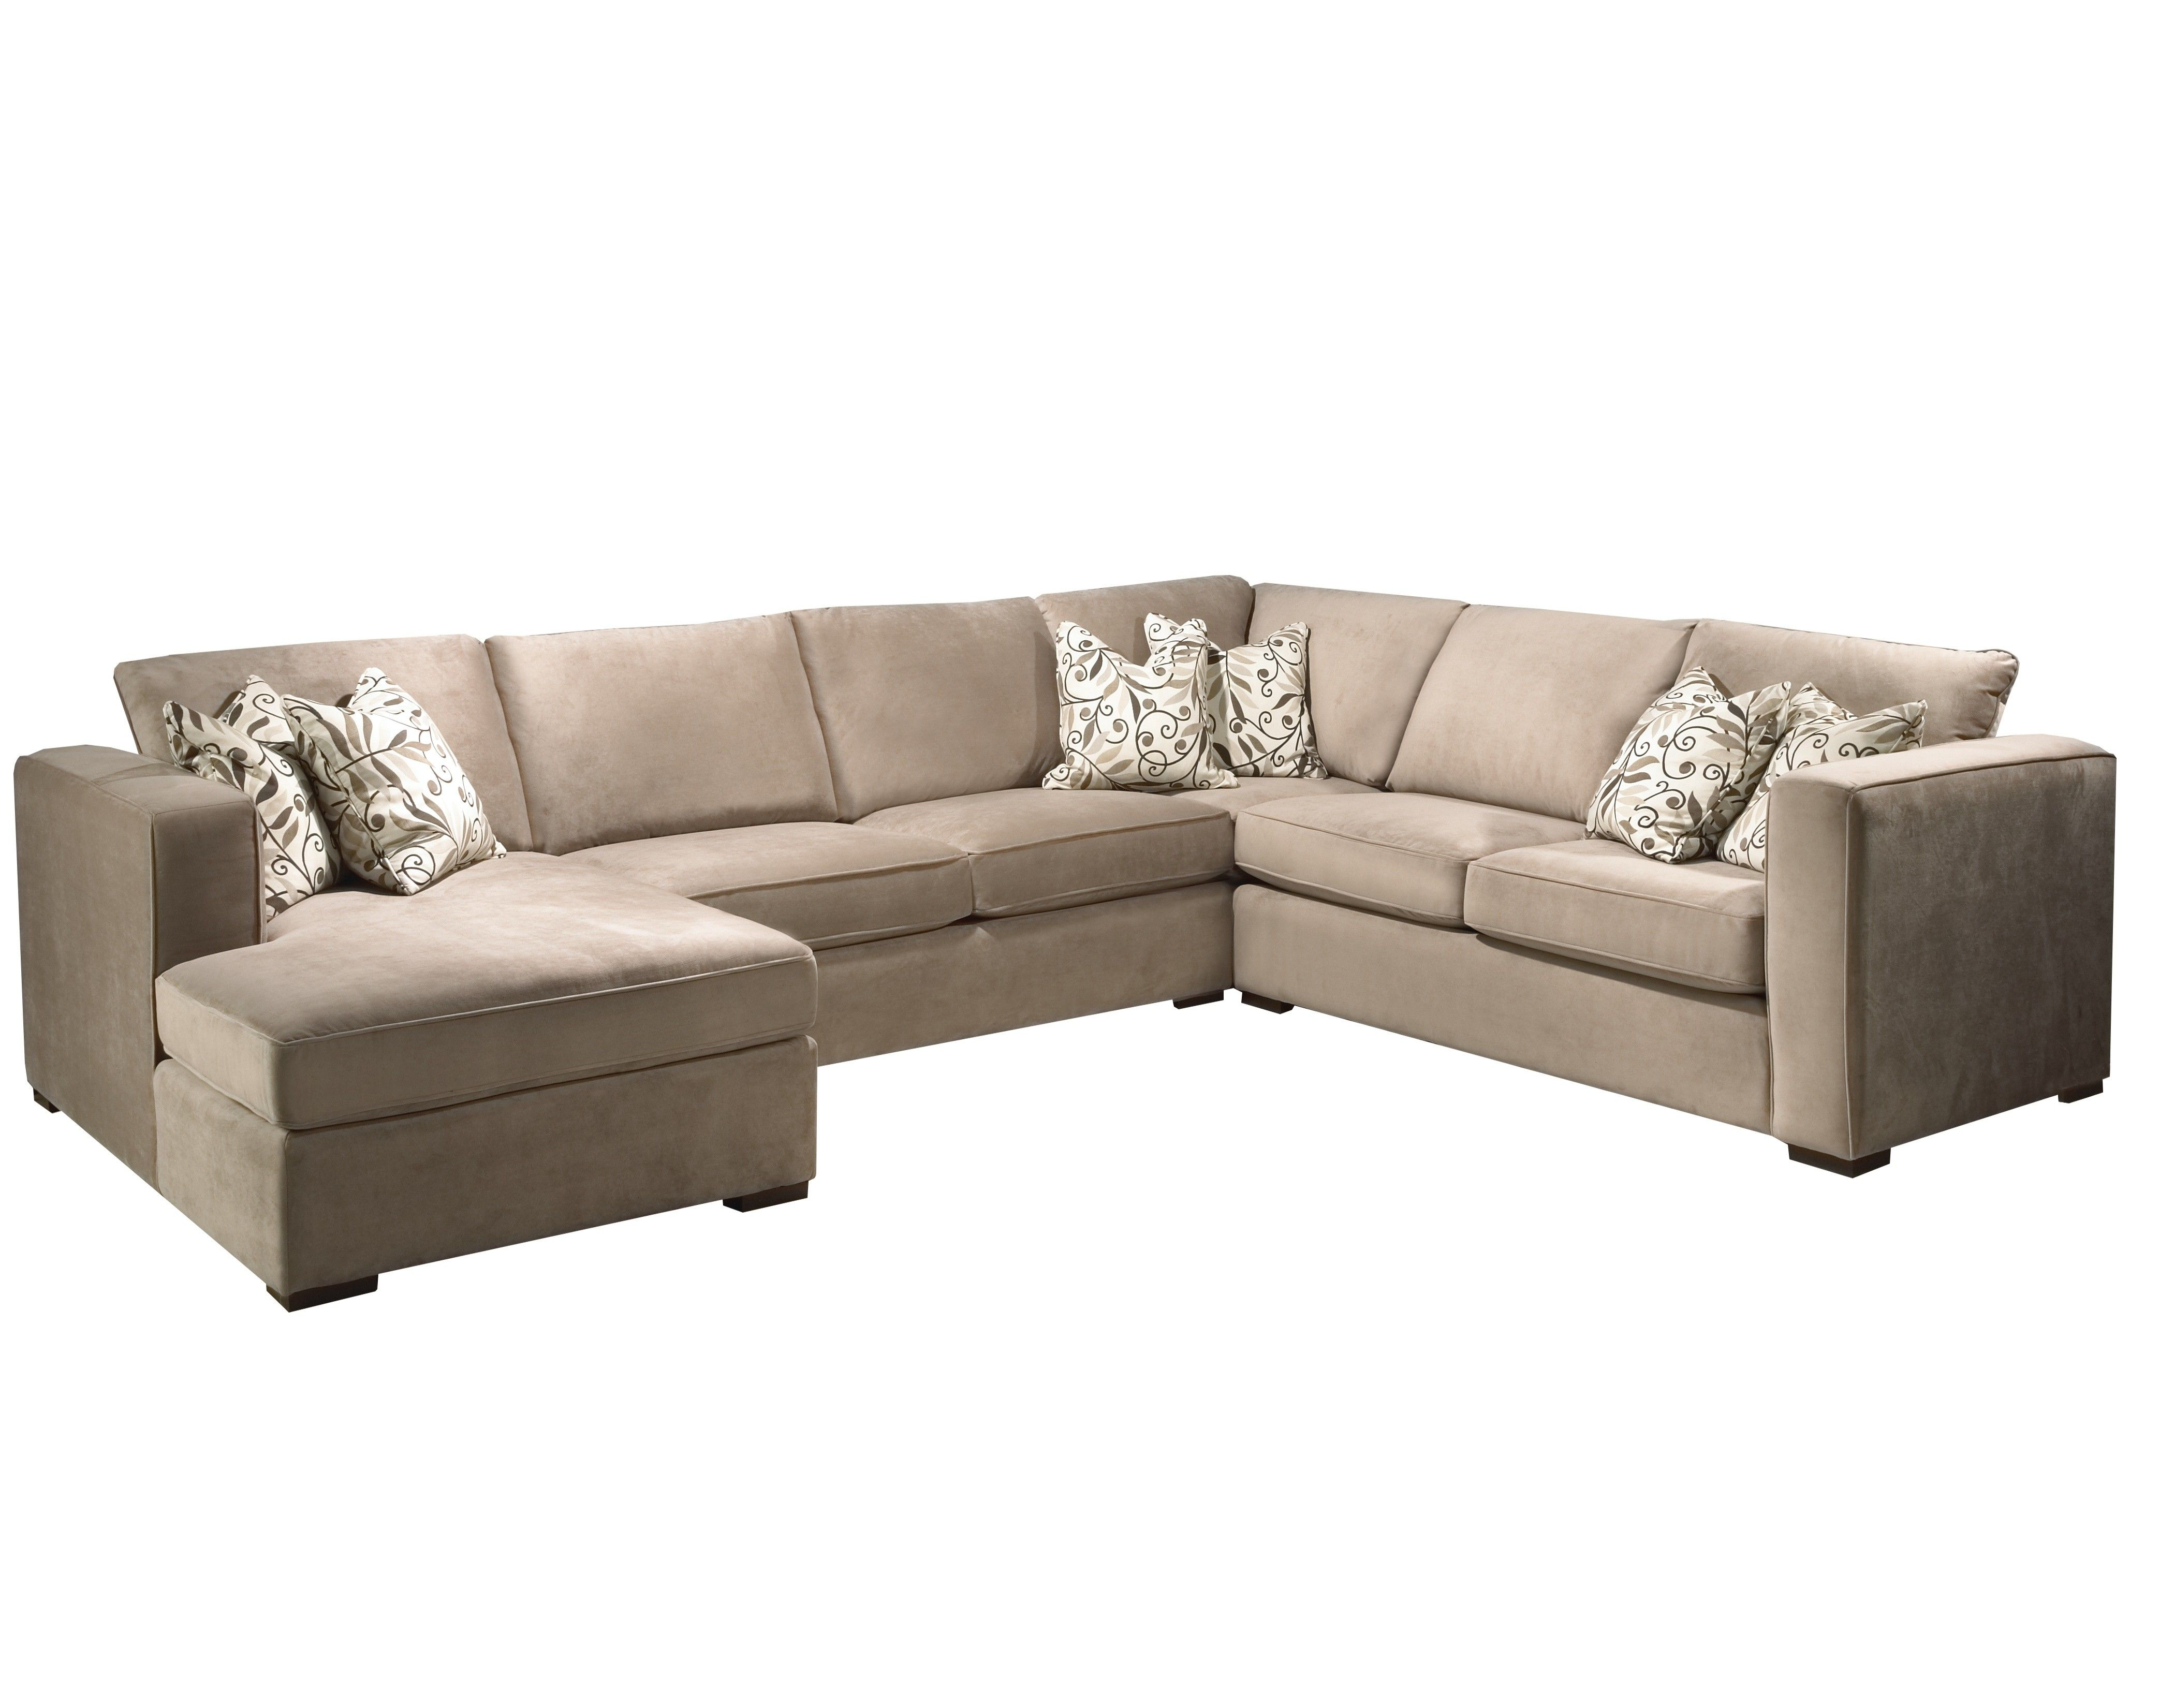 Modern Light Brown Microfiber Sectional With Chaise Brown Microfiber Sectional Microfiber Sectional Microfiber Sectional Sofa